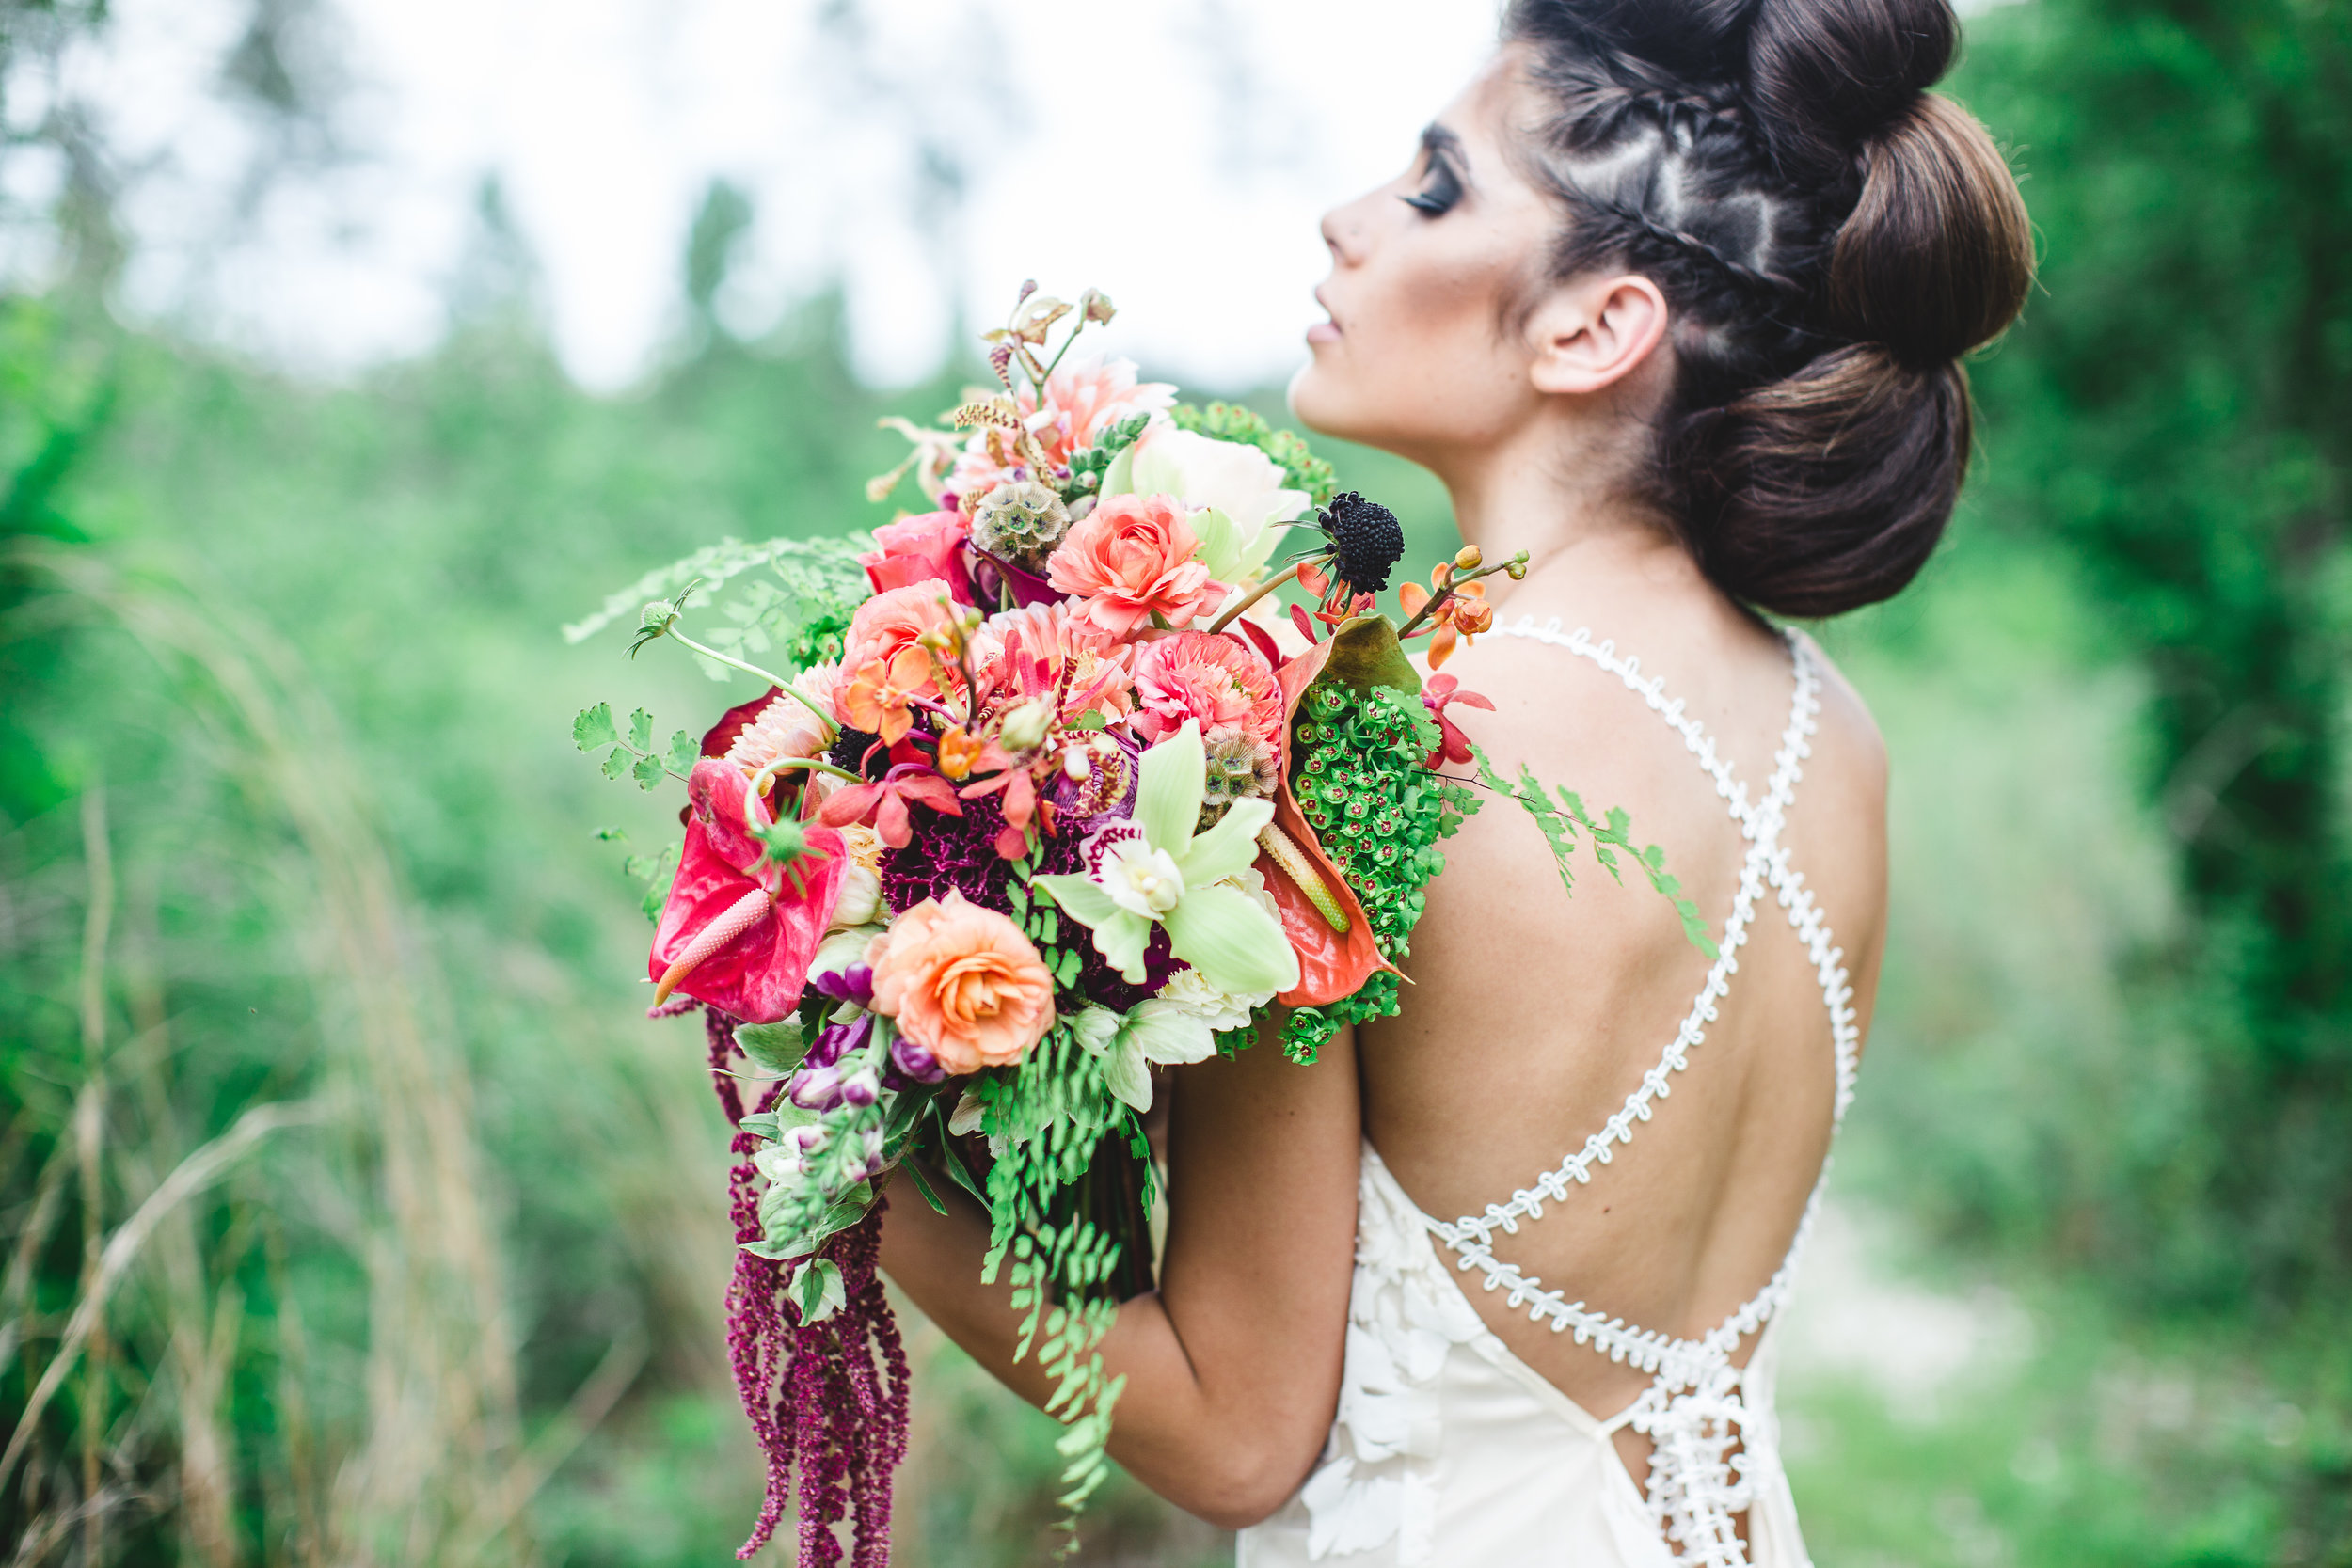 izzy-hudgins-photography-emily-burton-designs-ivory-and-beau-bridal-boutique-daughters-of-simone-sonje-jenny-yoo-bridesmaids-glamping-wedding-boho-wedding-outdoor-wedding-coldwater-gardens-wedding-savannah-bridal-boutique-savannah-wedding-planner-9.jpg